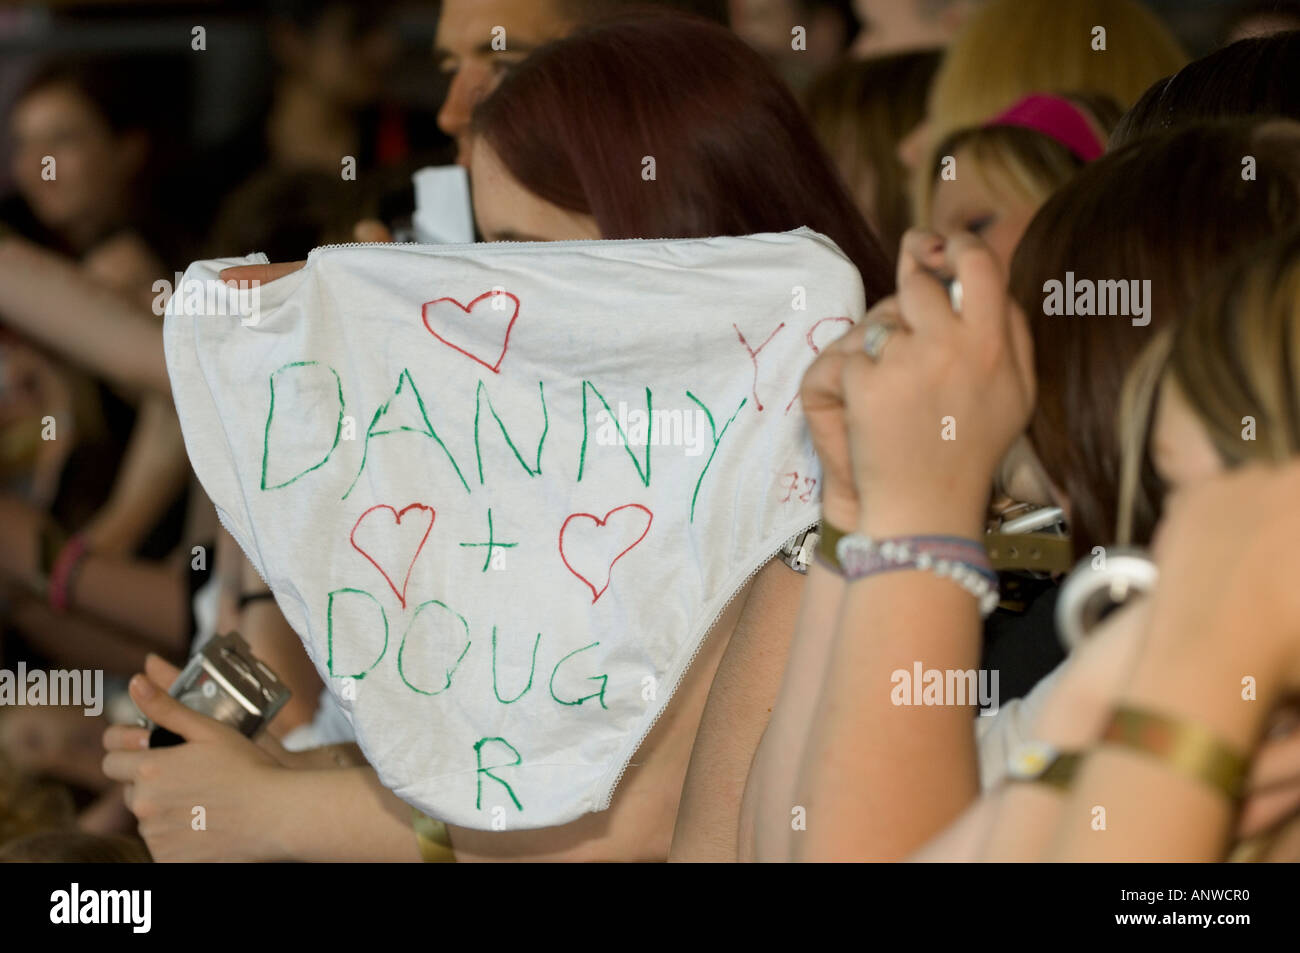 Danny Mcfly Stock Photos Amp Danny Mcfly Stock Images Alamy